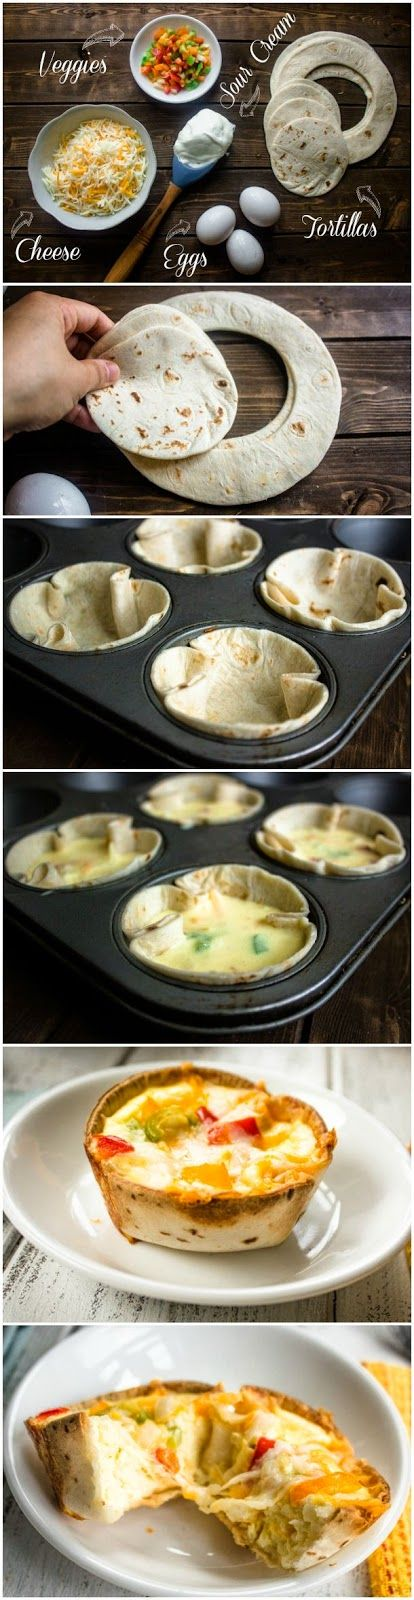 Mini Egg and Cheese Tortilla Cups